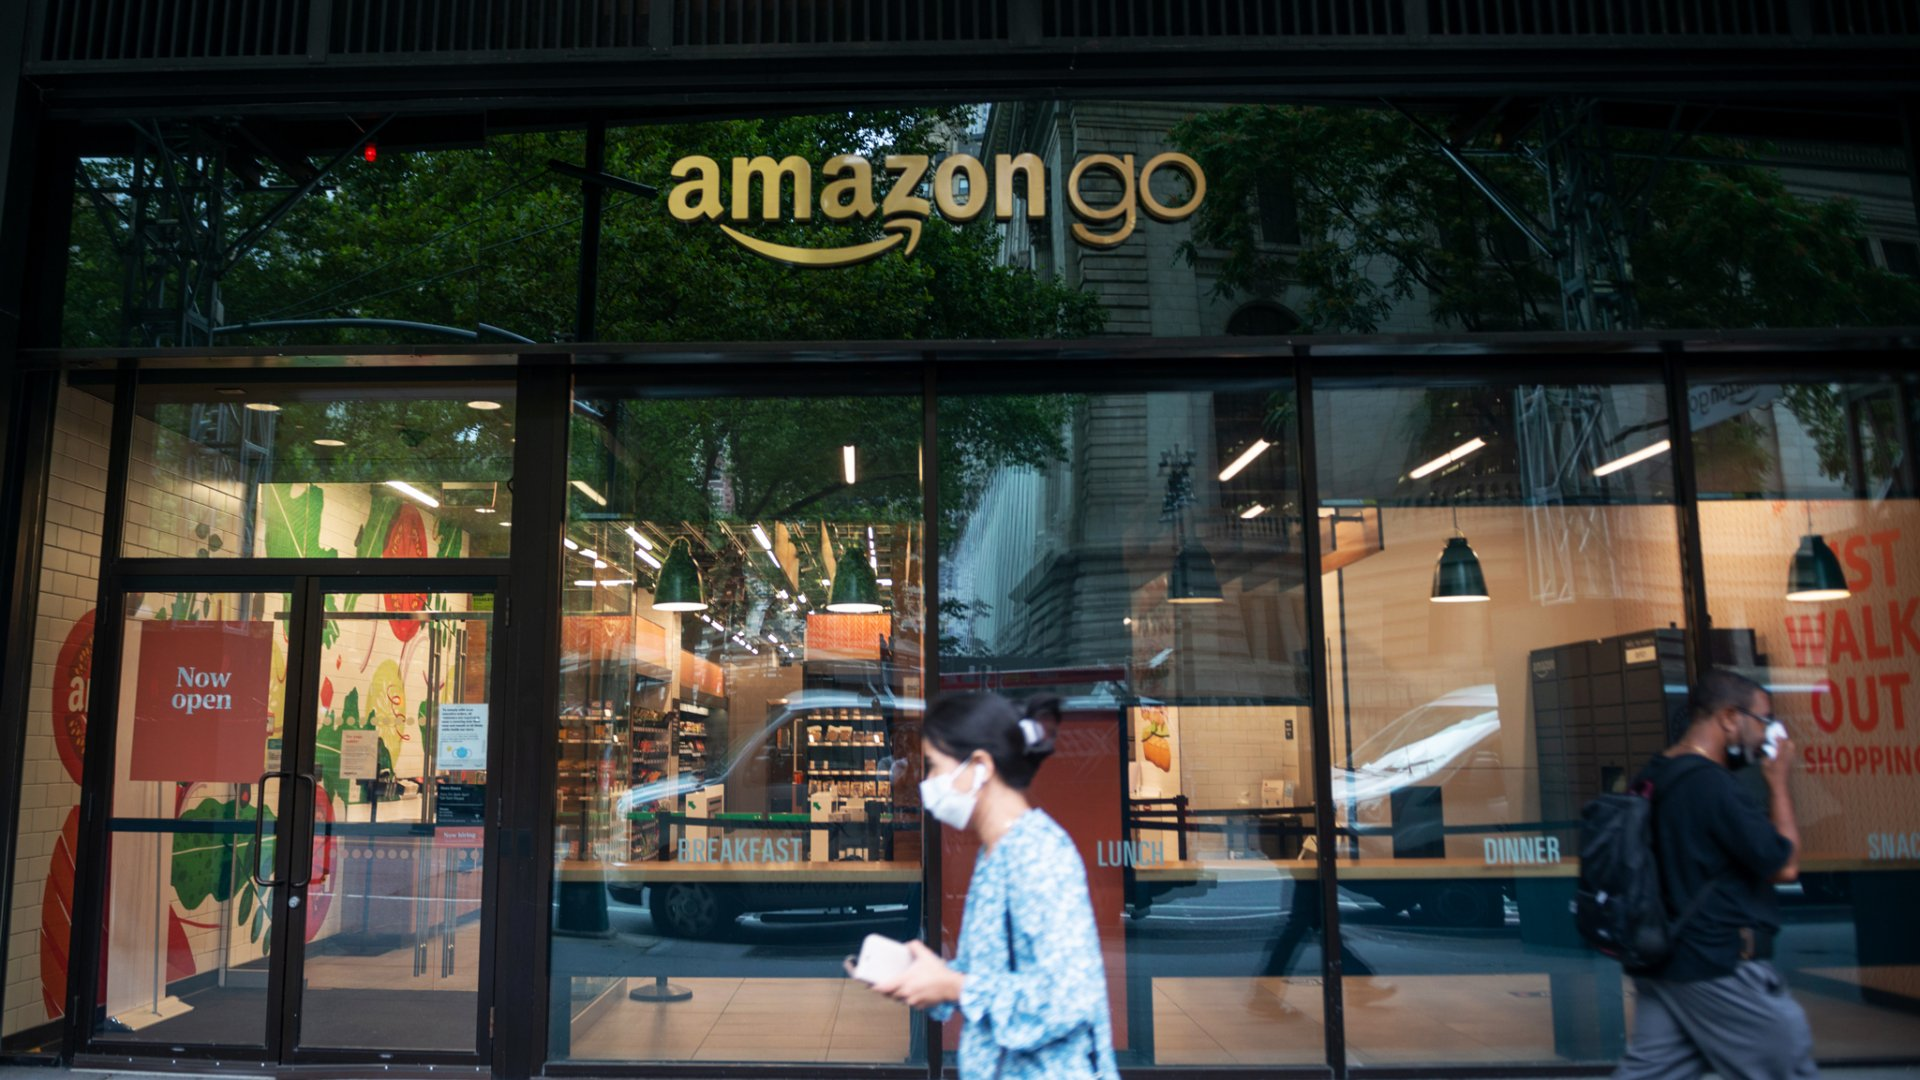 Enough With Working From Home--Amazon Is Making a Big Bet on Getting Back to the Office